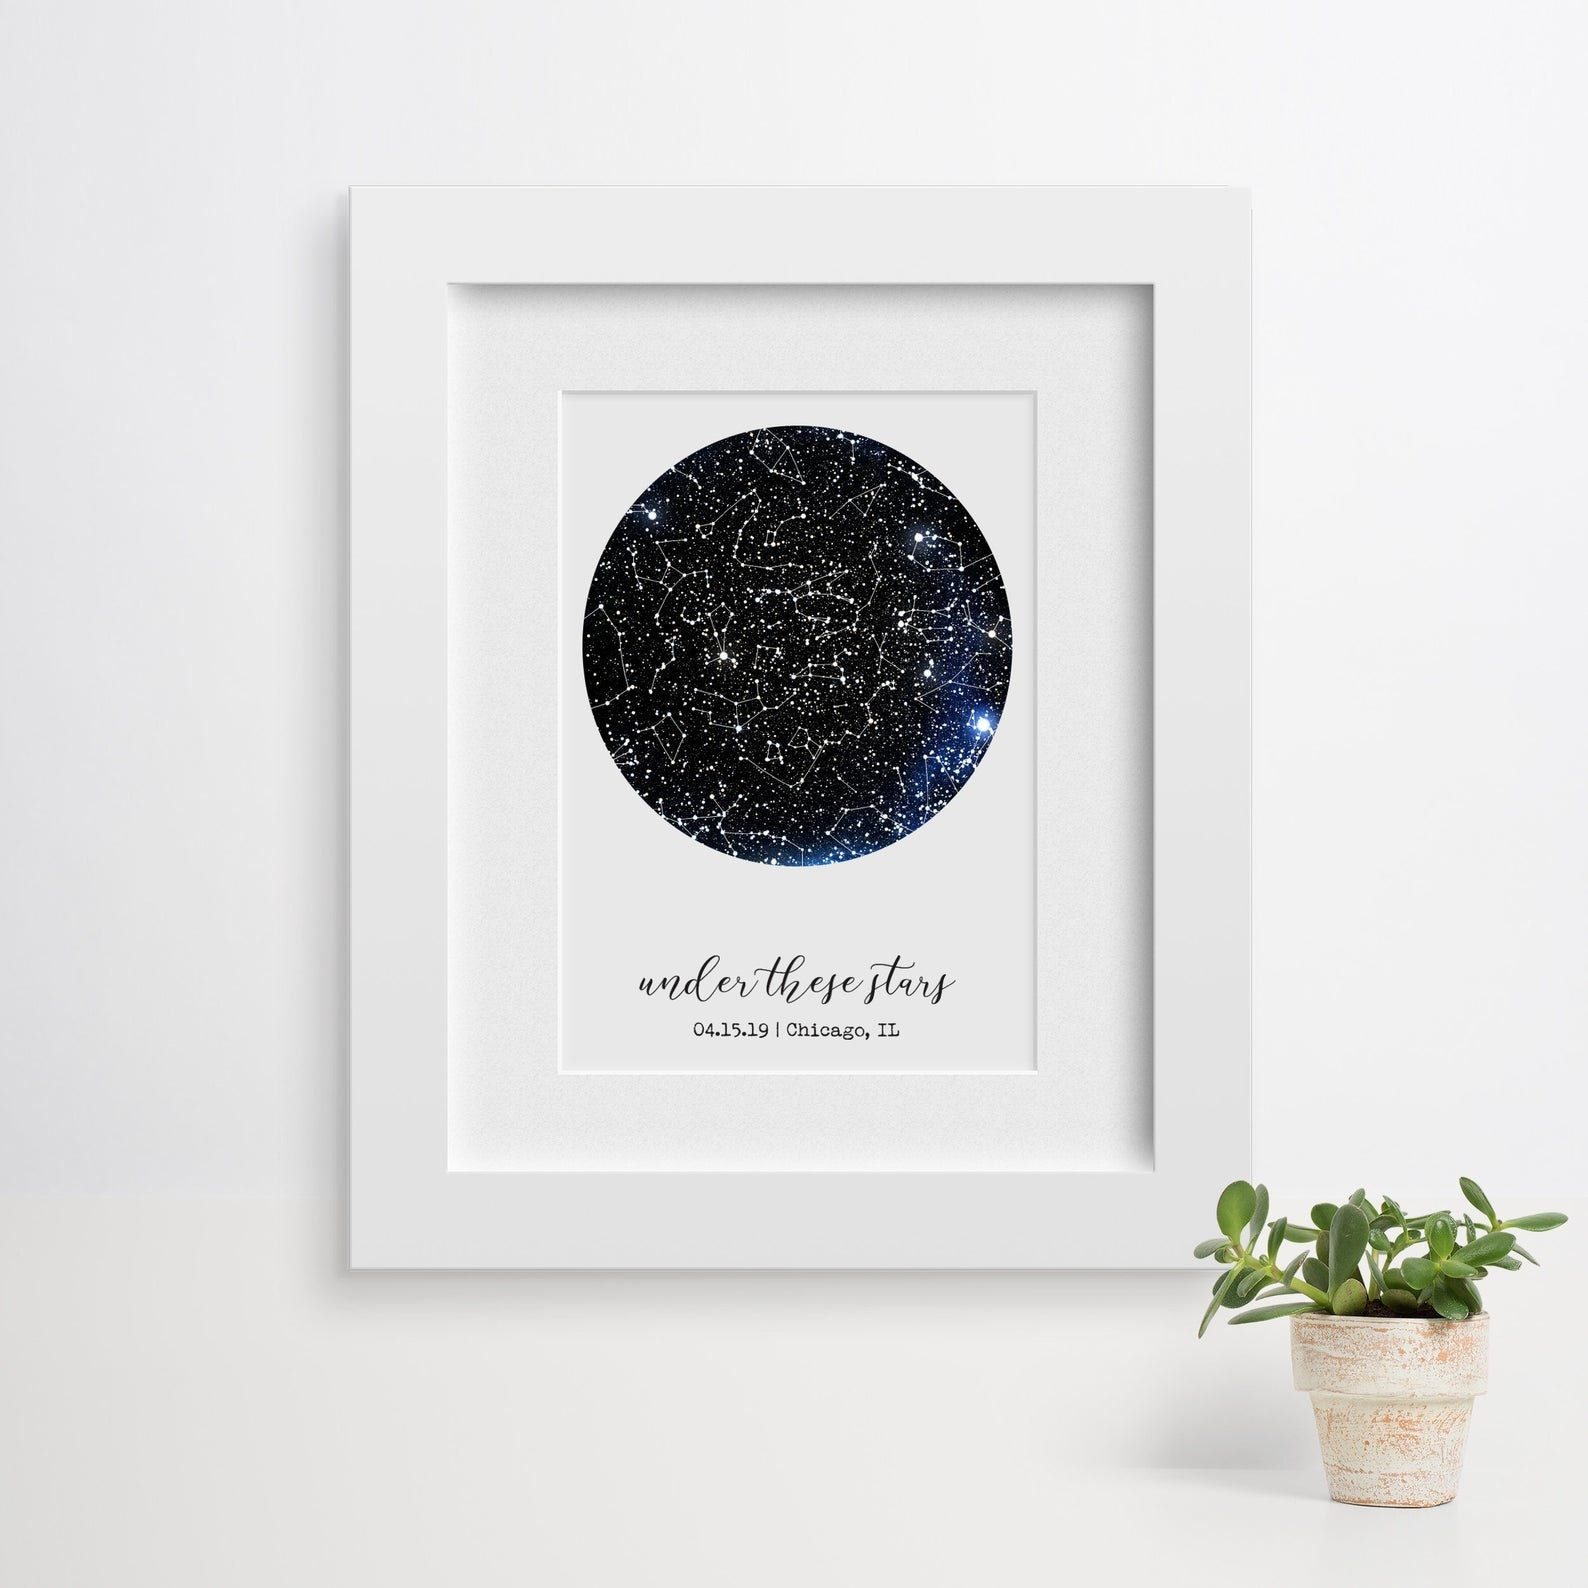 Customized constellation print with white mat and white frame hanging on wall